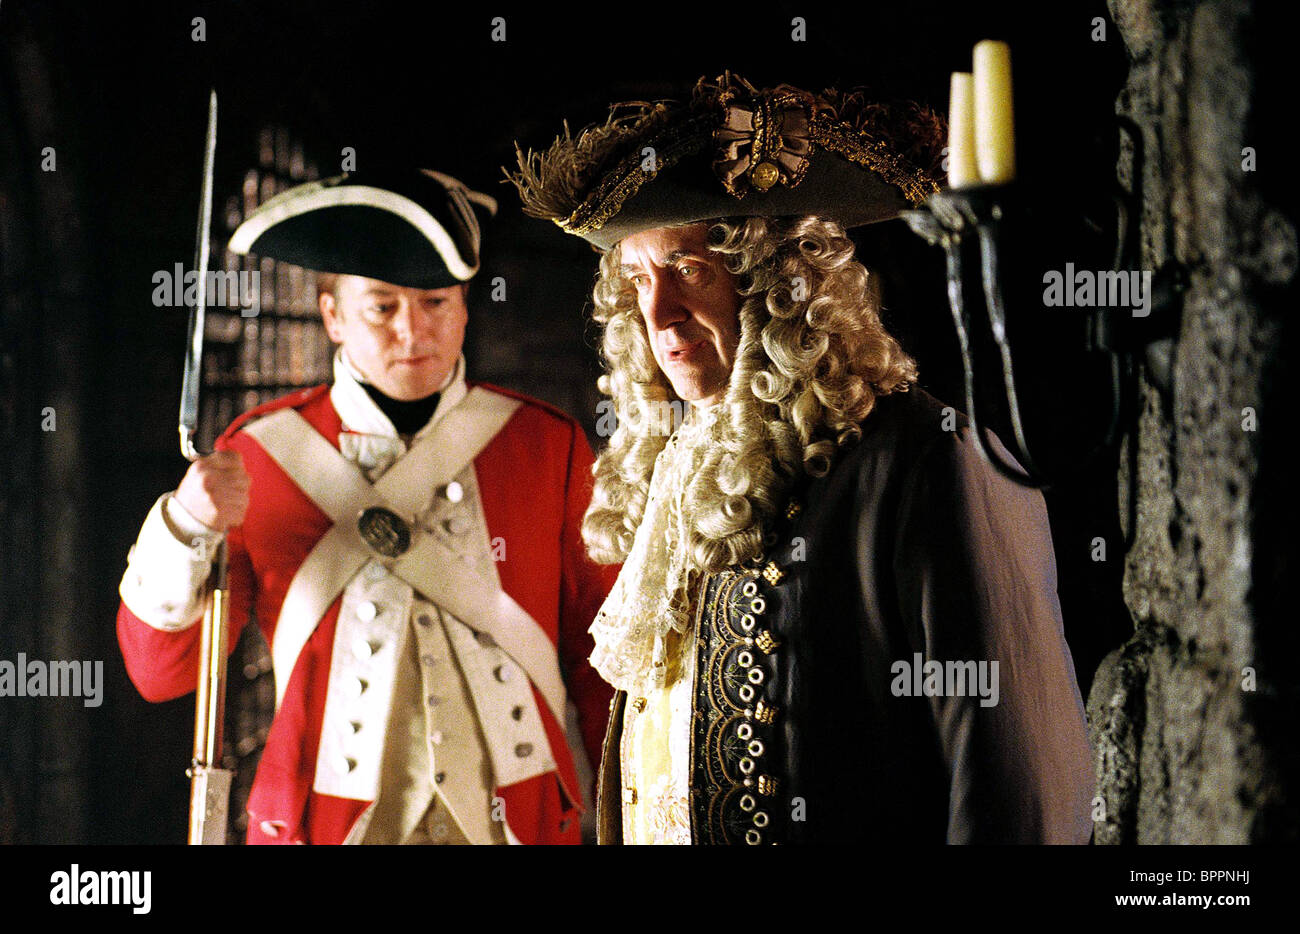 JONATHAN PRYCE PIRATES OF THE CARIBBEAN: DEAD MAN'S CHEST (2006) - Stock Image